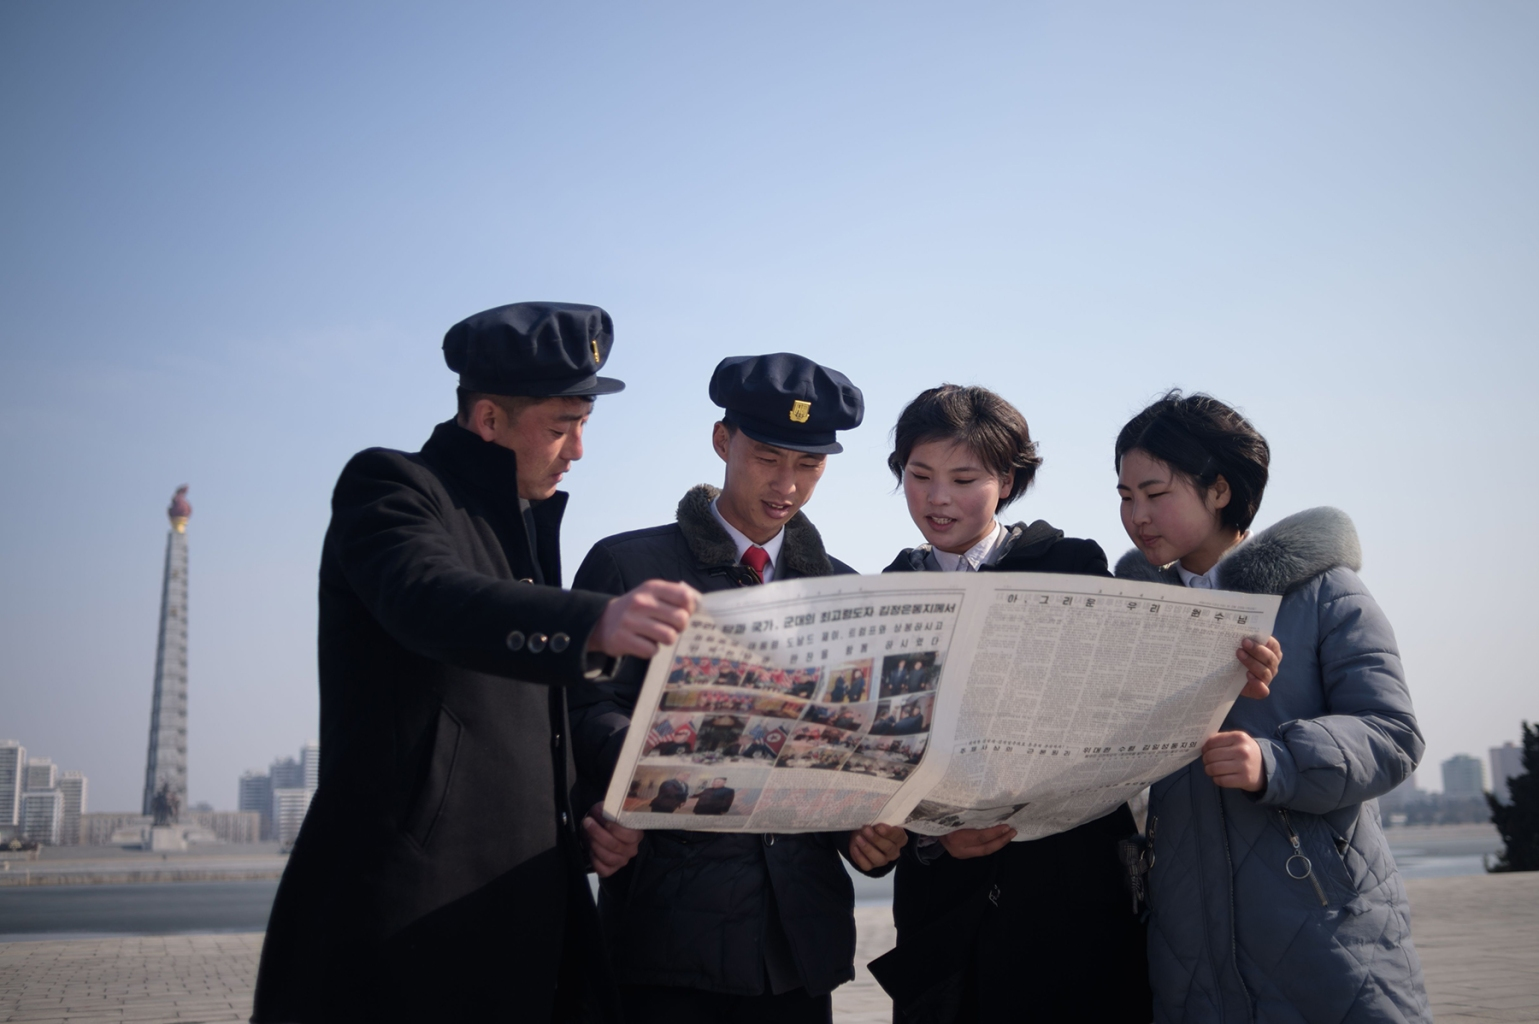 North Korean students read the Rodong Sinmun newspaper coverage of Kim Jong Un's visit to  Vietnam for a summit in Hanoi with U.S. President Donald Trump on Kim Il Sung square in Pyongyang on Feb. 28. KIM WON JIN/AFP/Getty Images